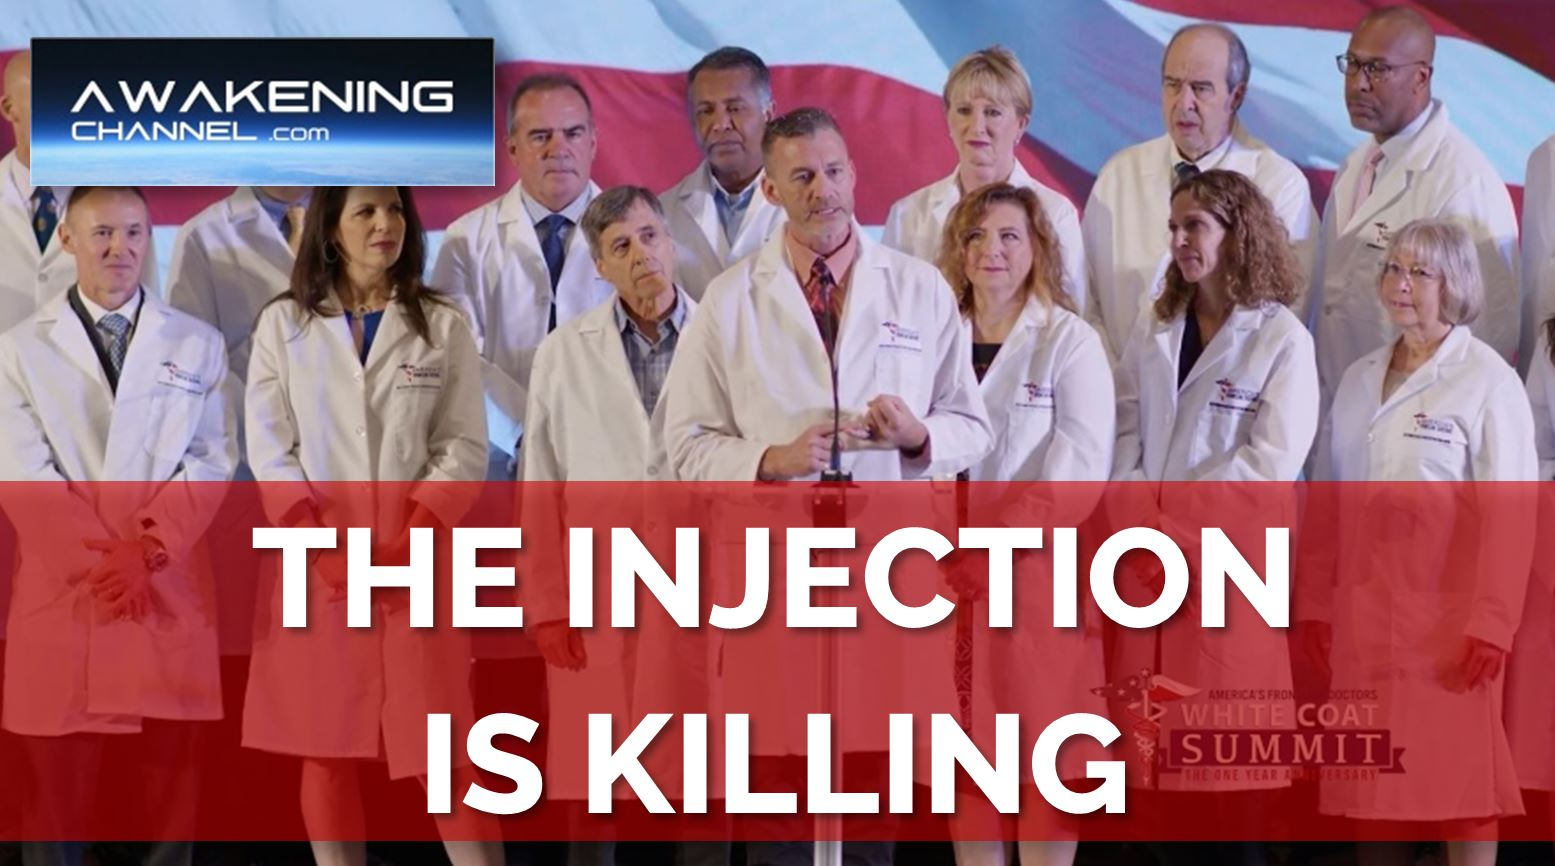 WARNING! 15 Times Greater Chance of Death from the Injection than from CV. Lawyers and Doctors Claim